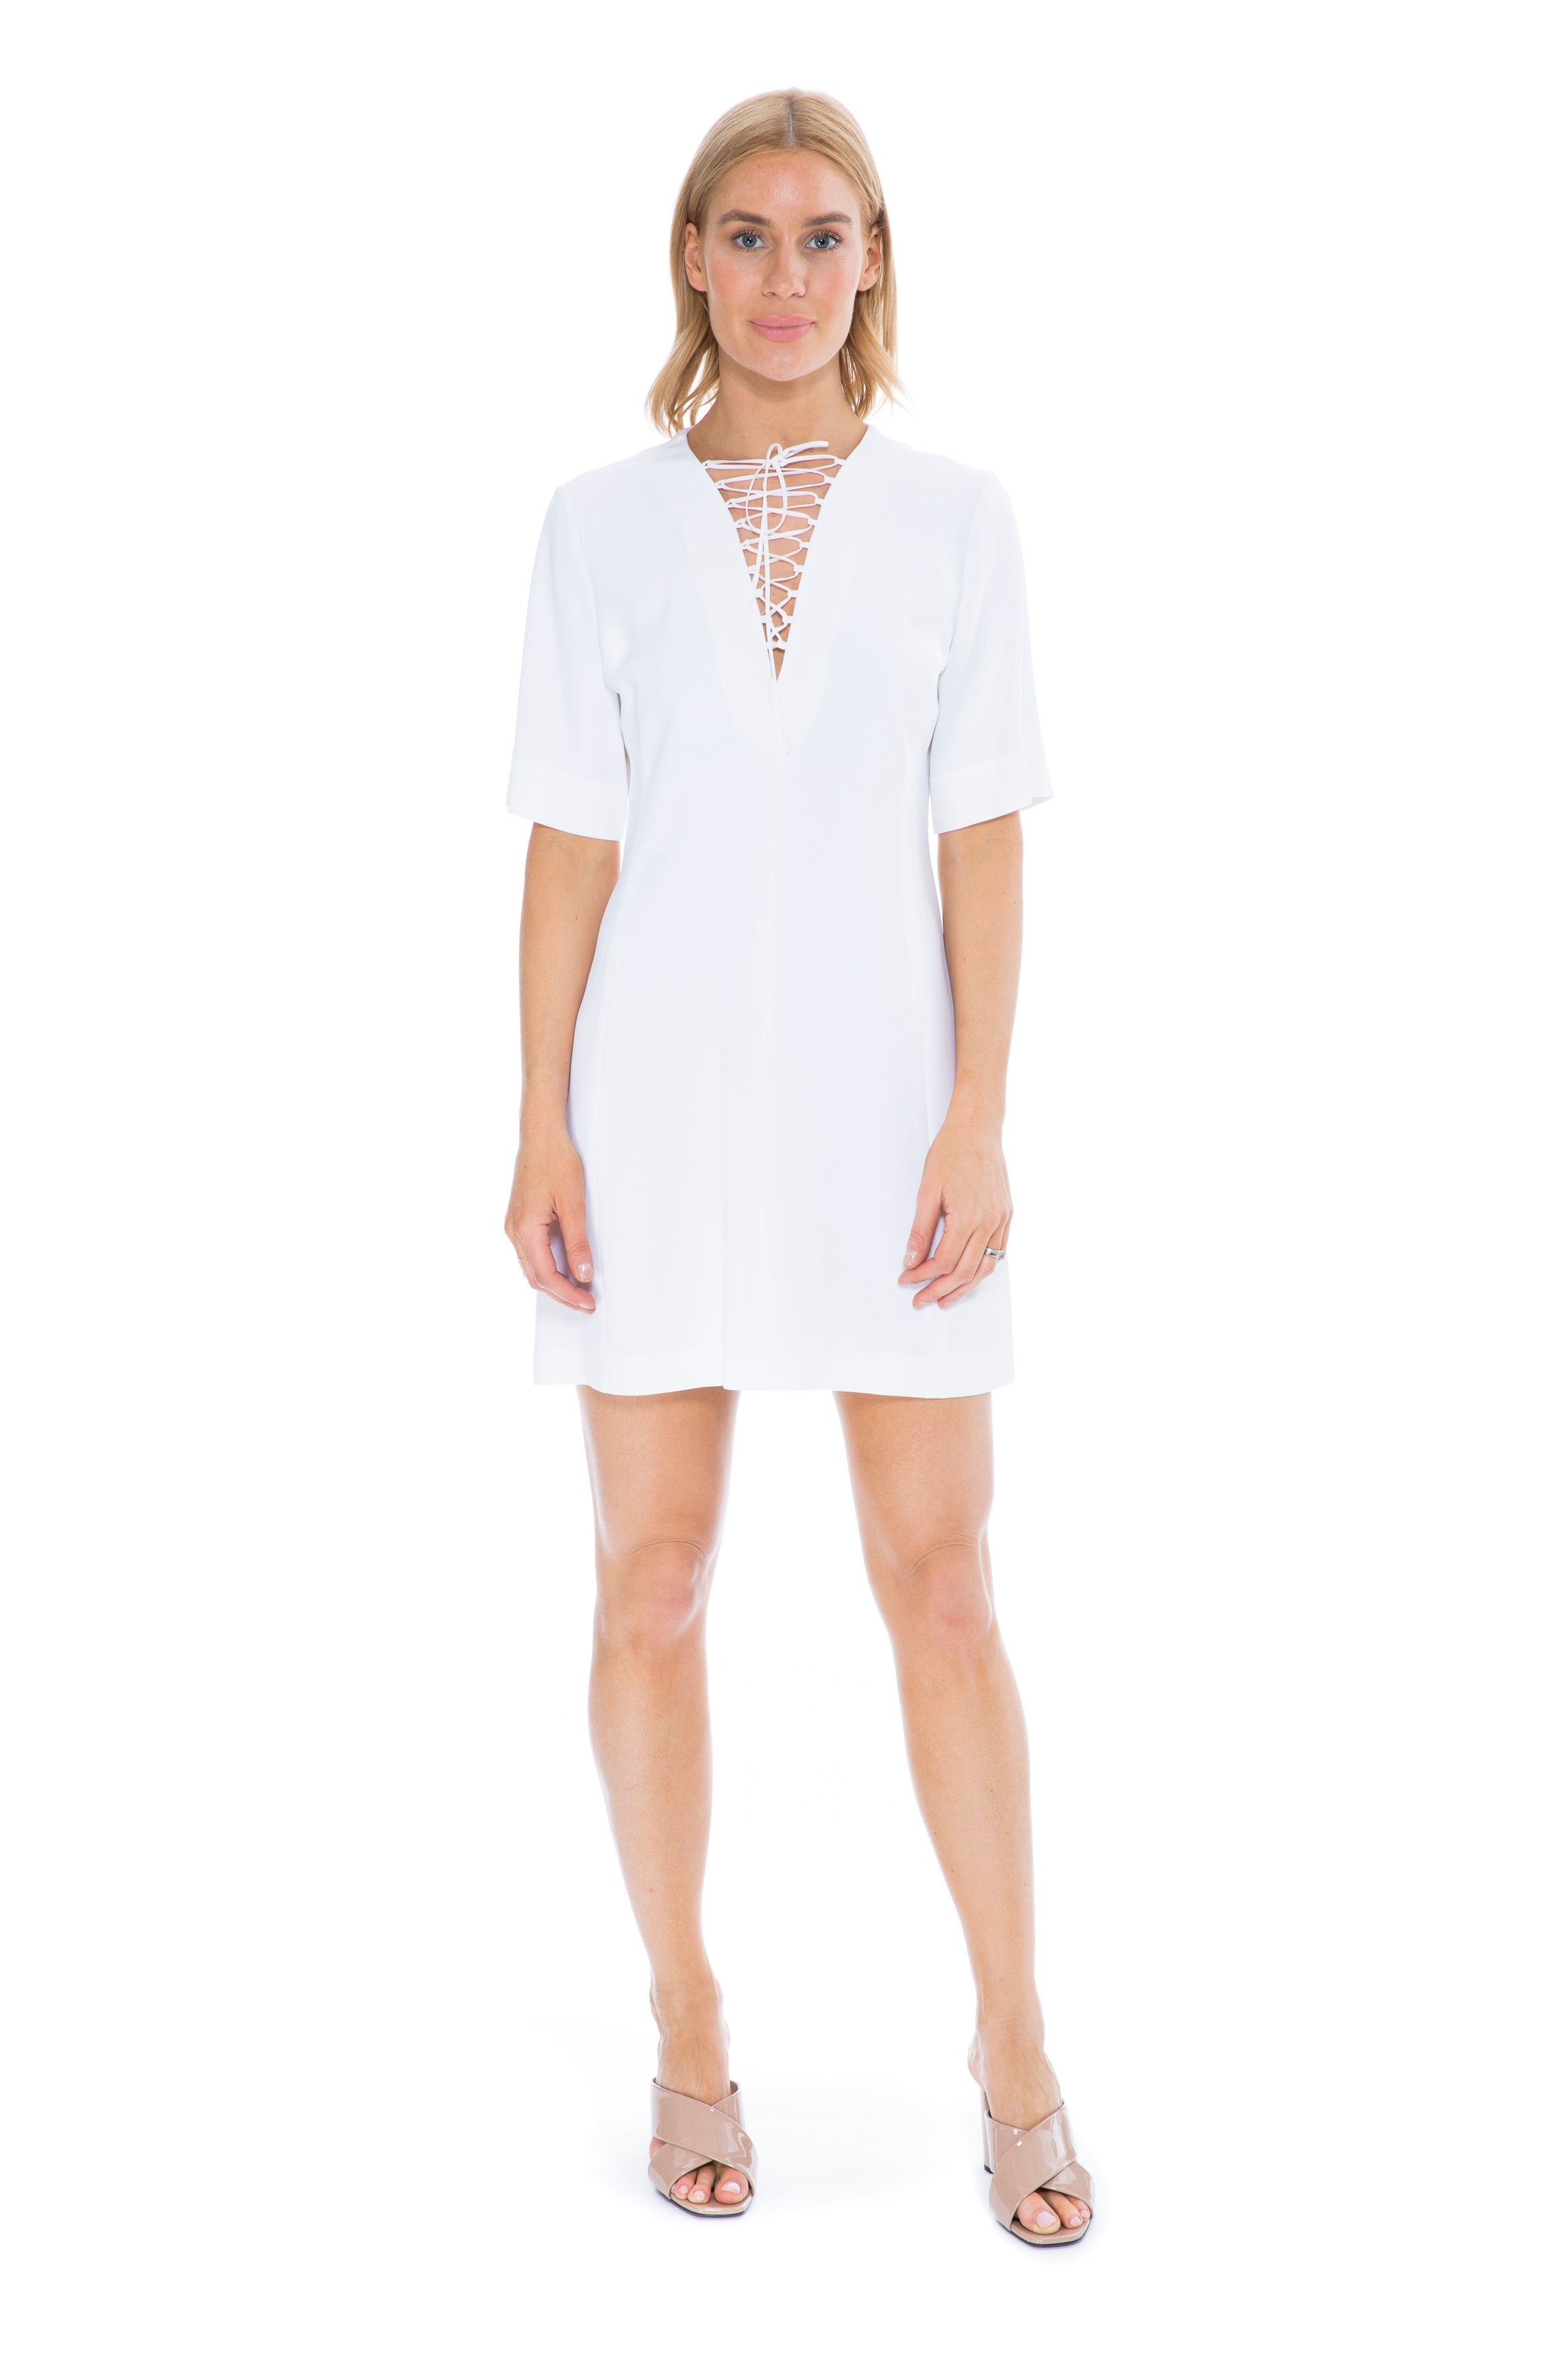 WHITE DRESS WITH LACING DETAIL